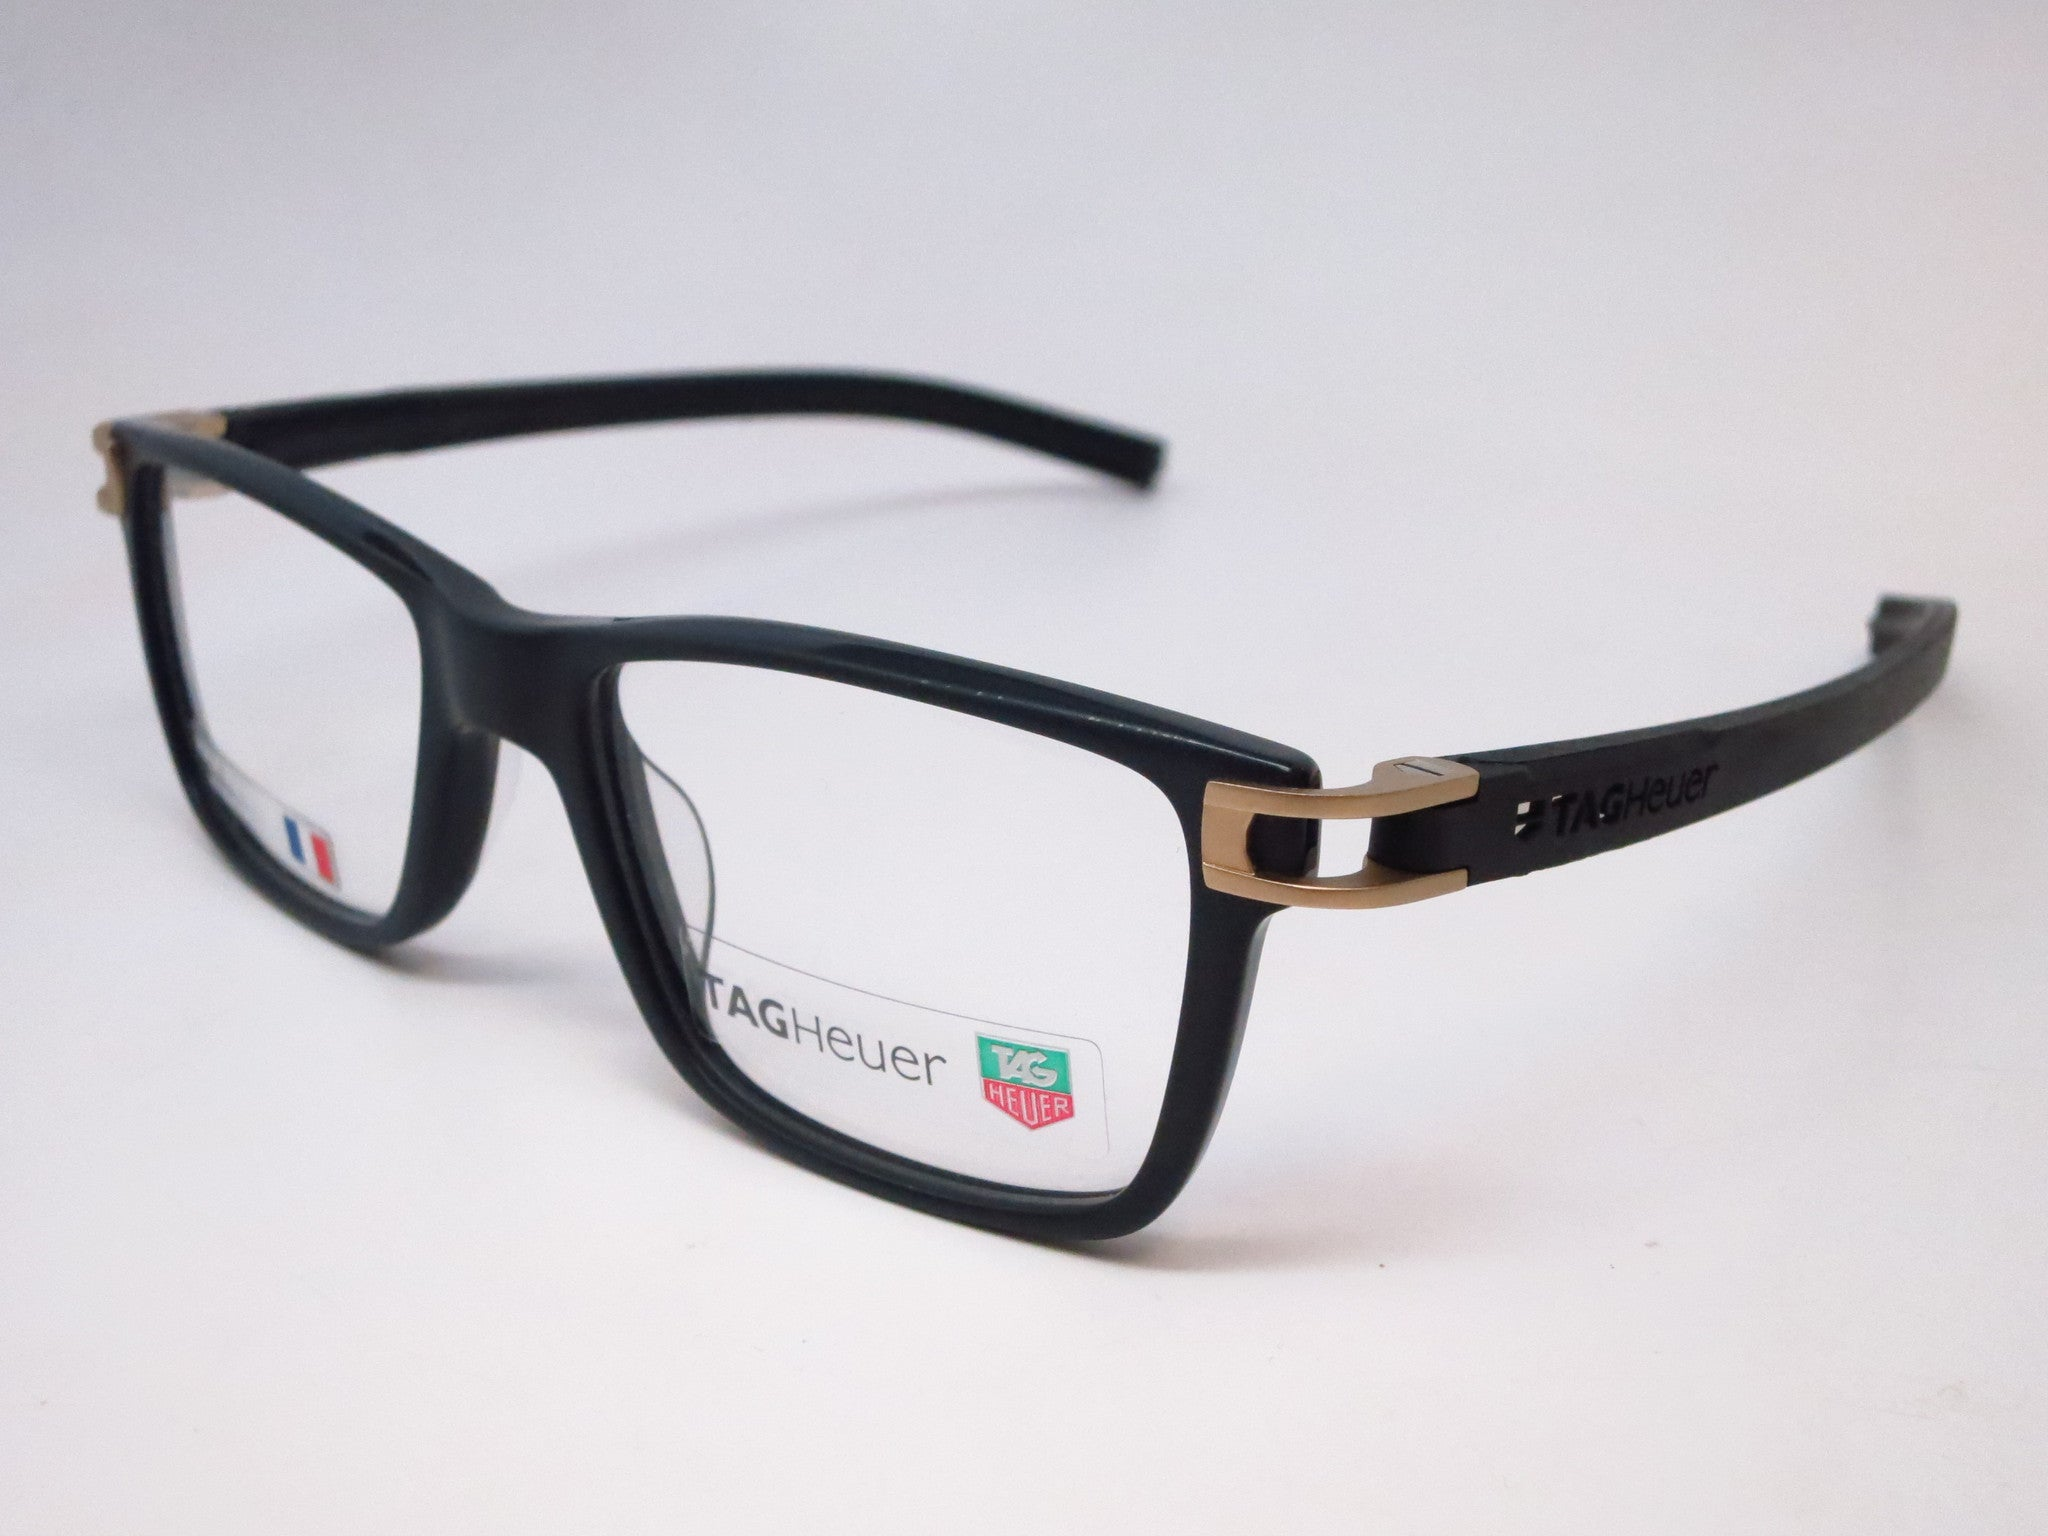 Tag Heuer Eyeglasses Frame Replacement Parts : Tag Heuer Eyewear Replacement Parts 408INC BLOG